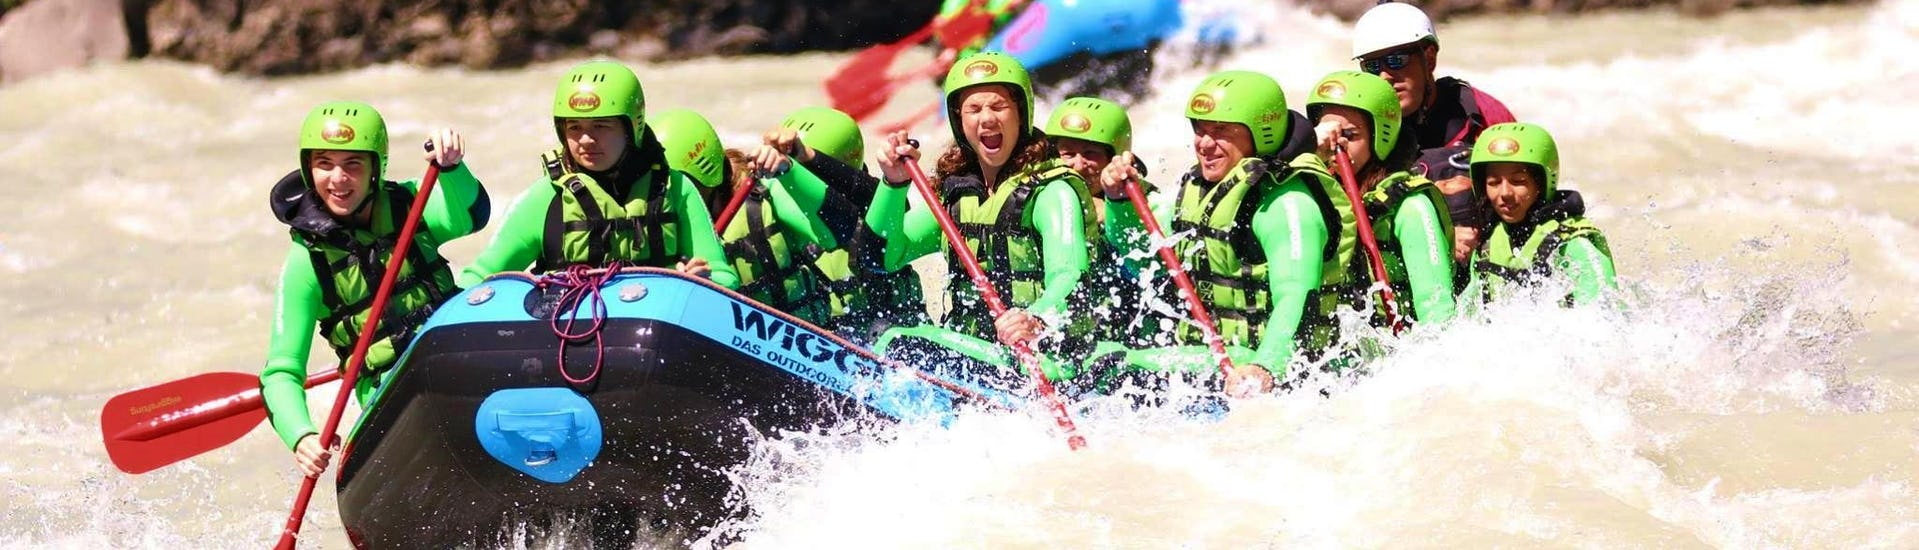 classic-rafting-in-the-imster-schlucht-wiggi-rafting